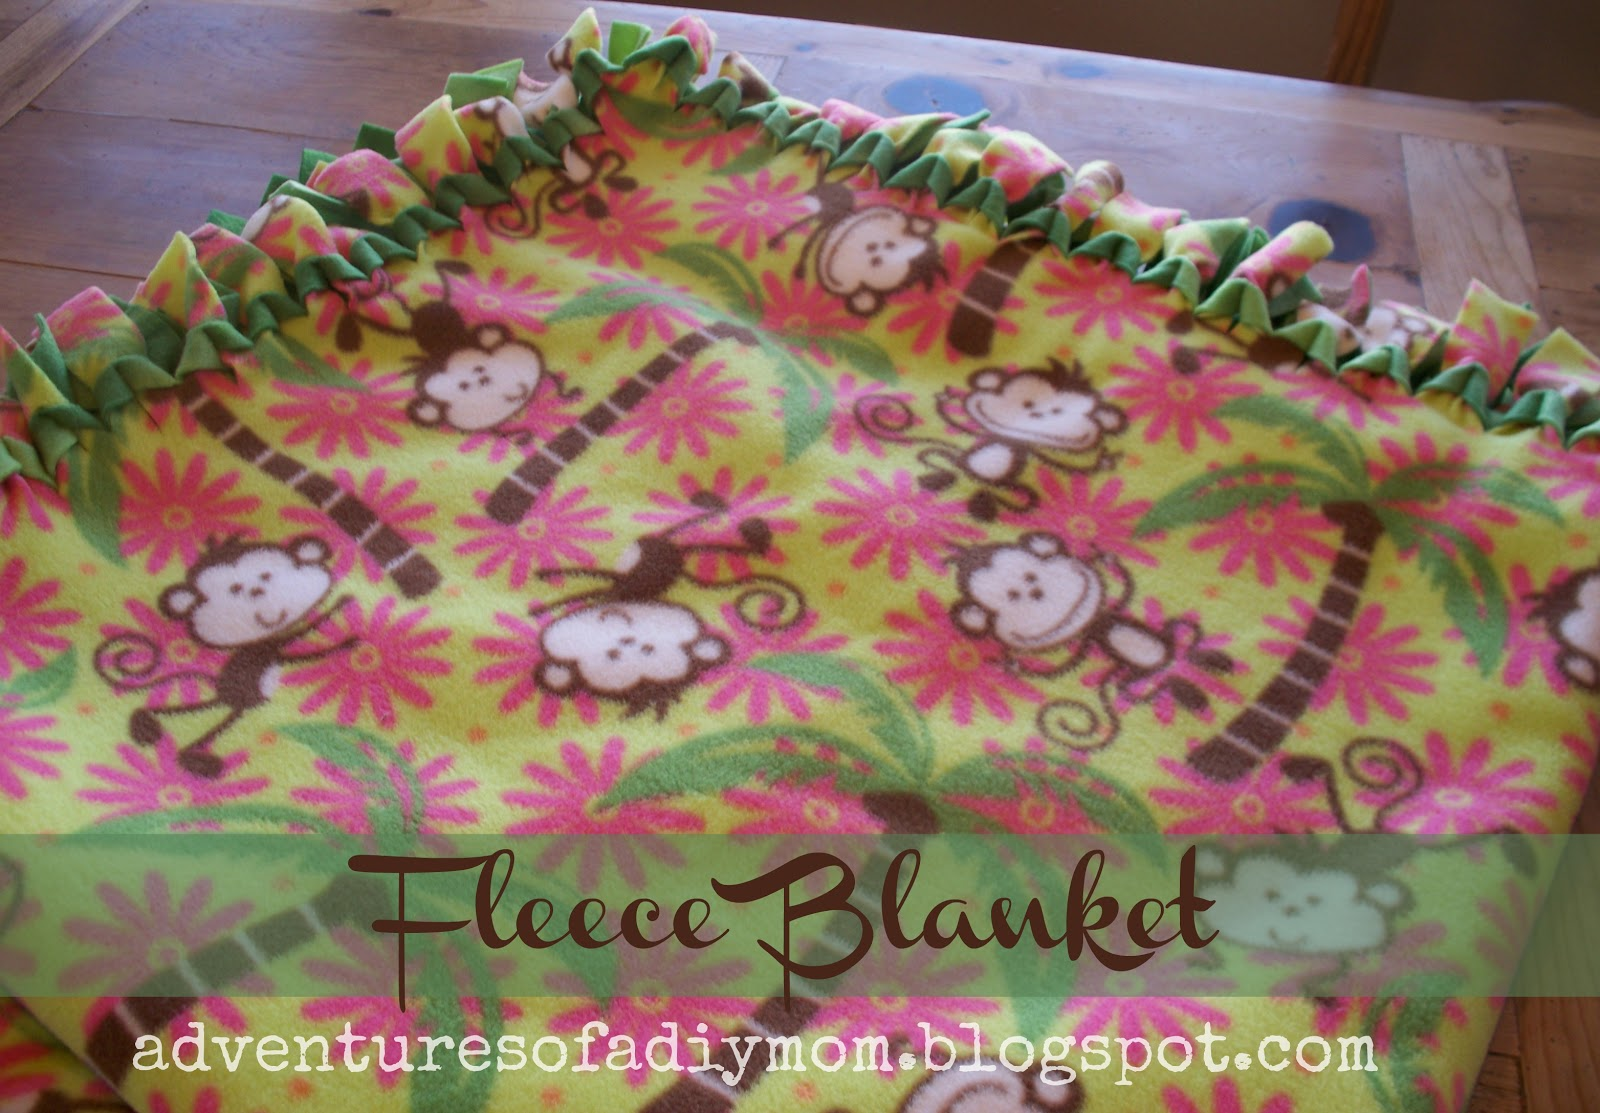 how to make a no sew fleece blanket - adventures of a diy mom